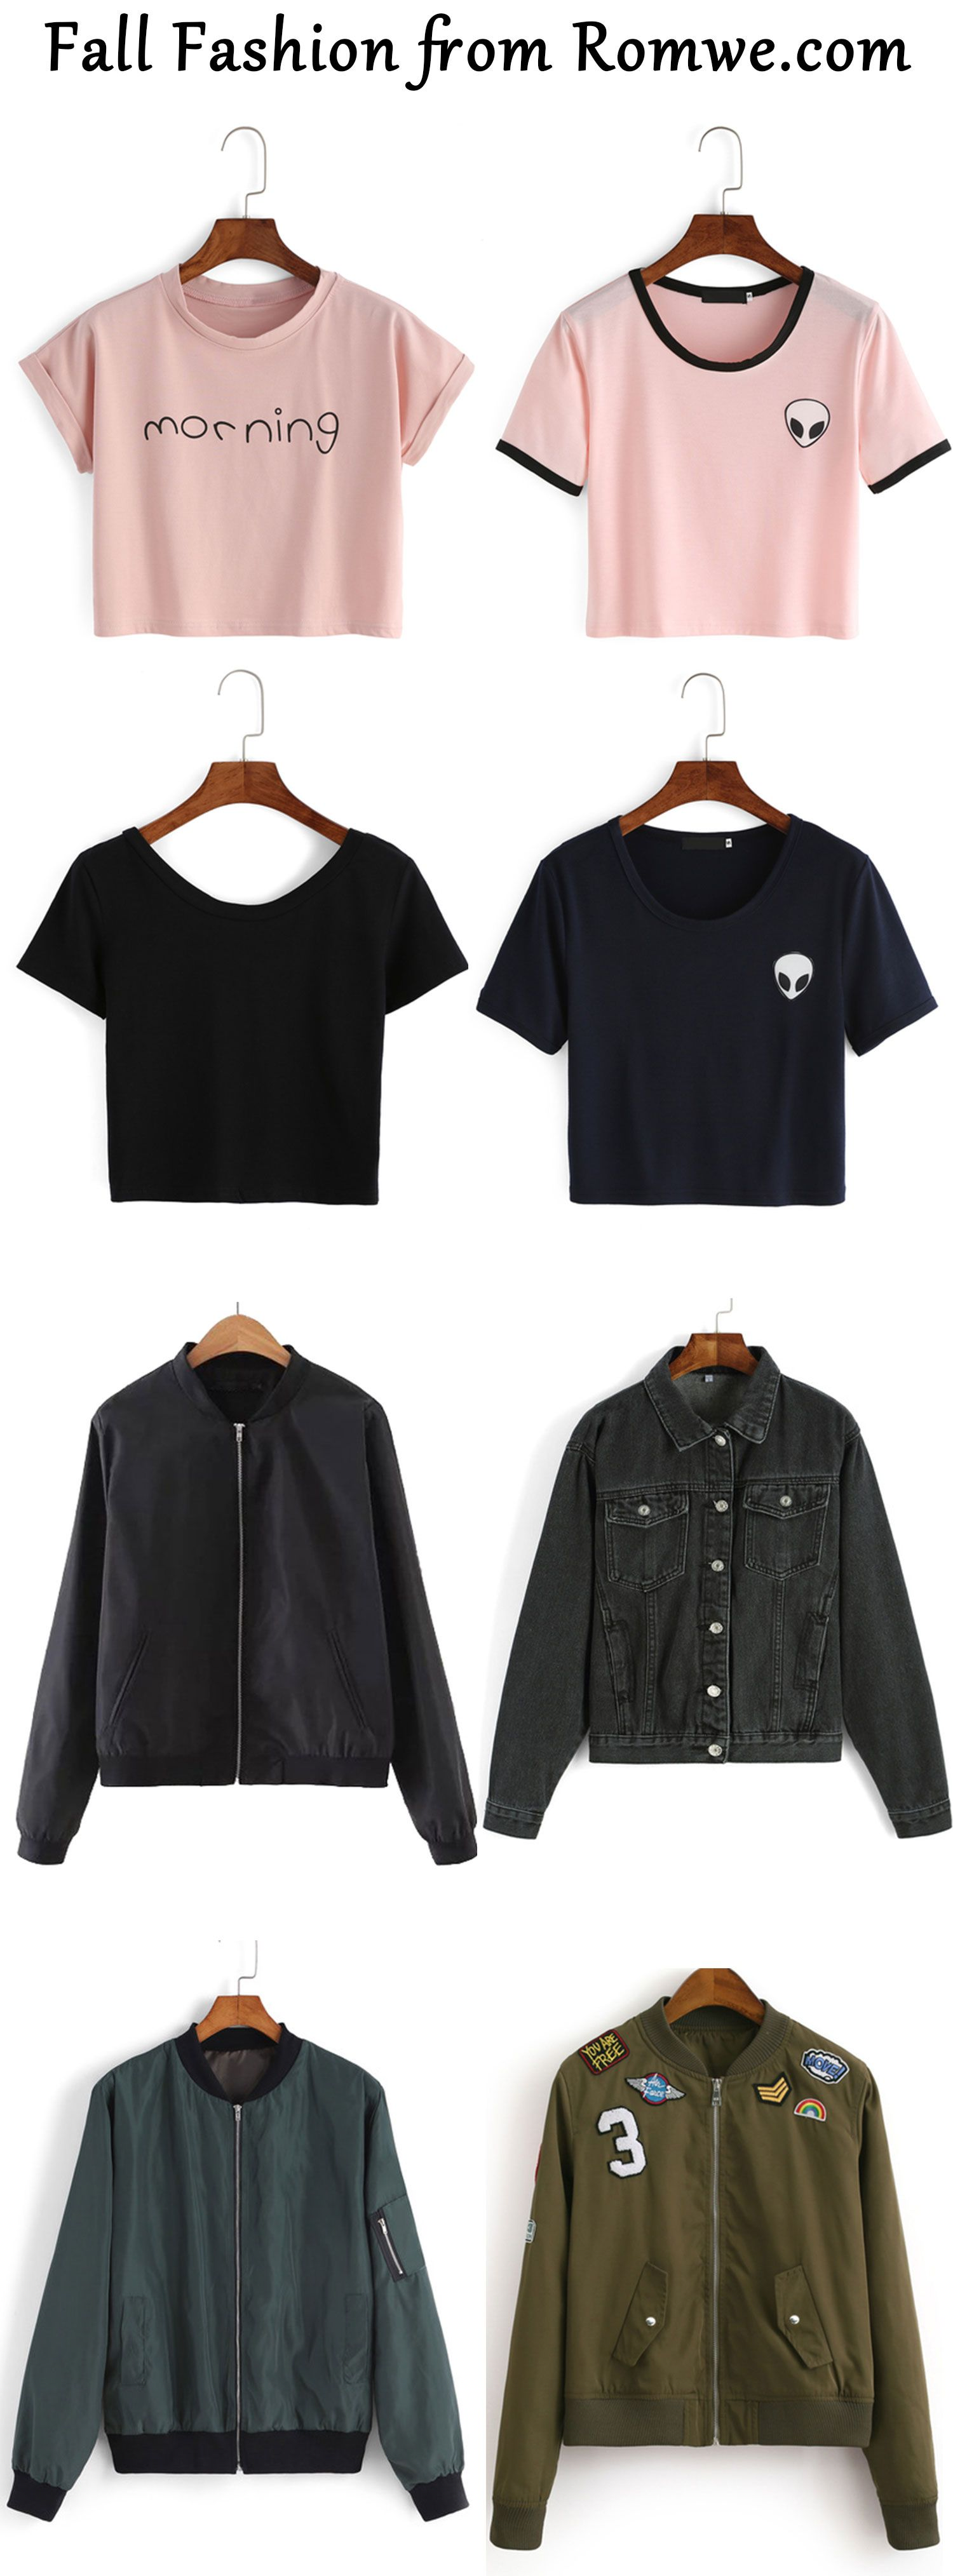 Clothes From Romwe